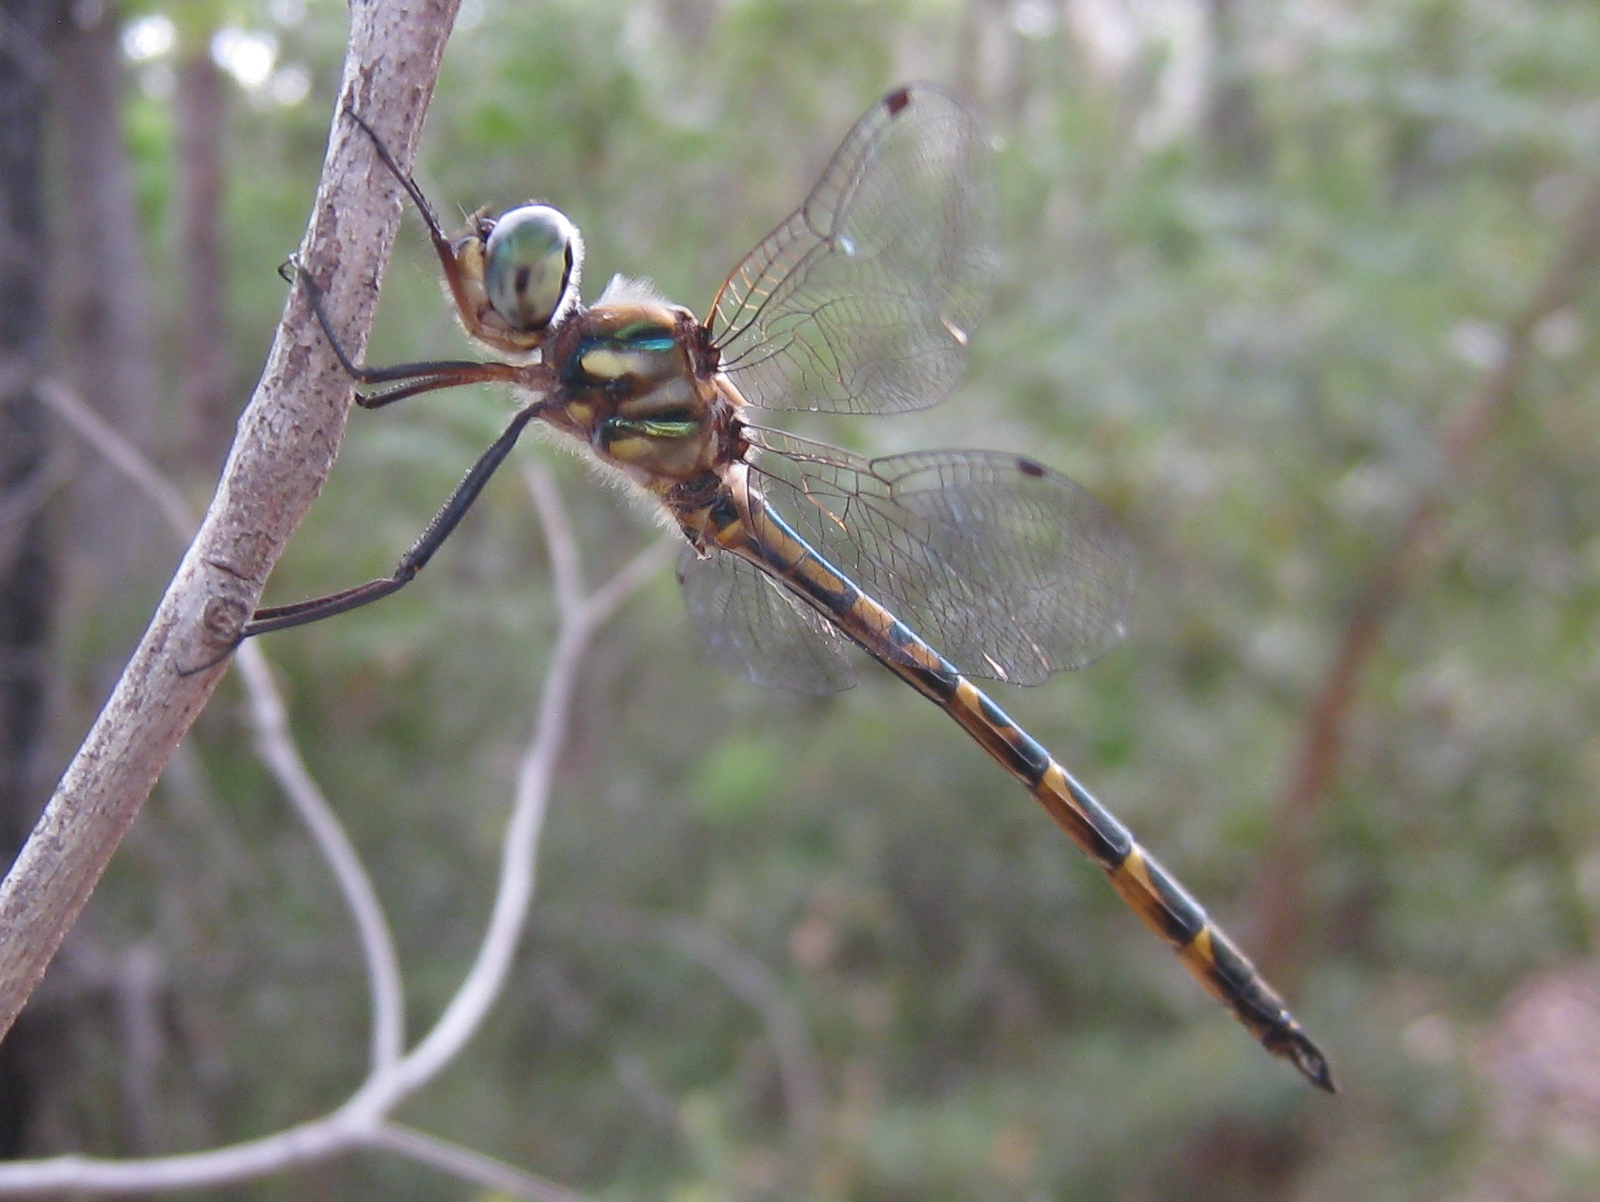 photos hemicordulia australiae australian male ausspeciespages emerald